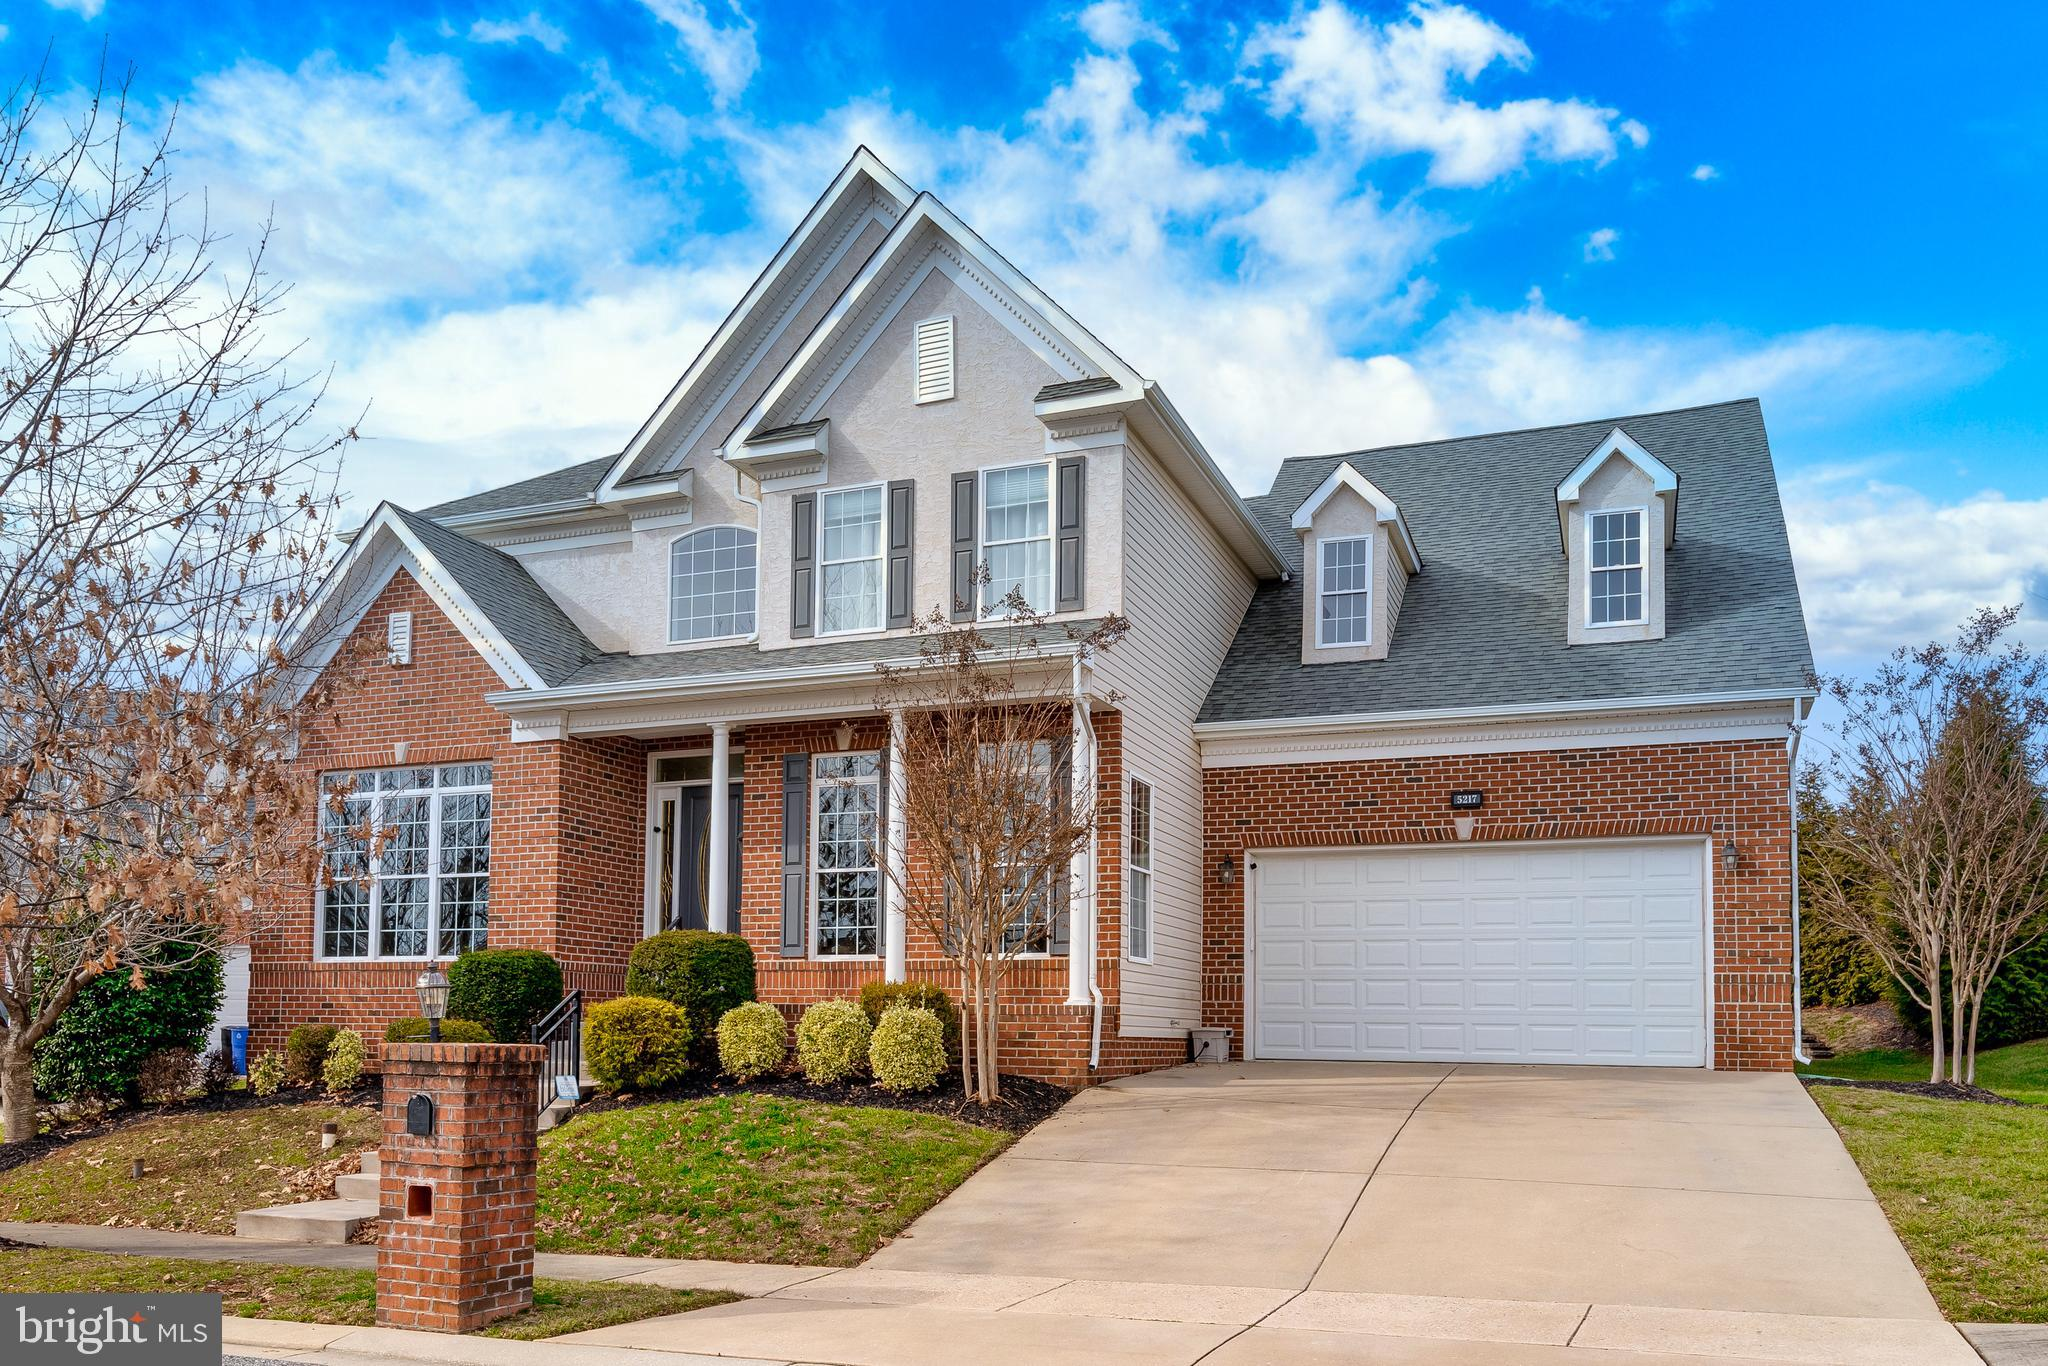 5217 SCENIC DRIVE, PERRY HALL, MD 21128